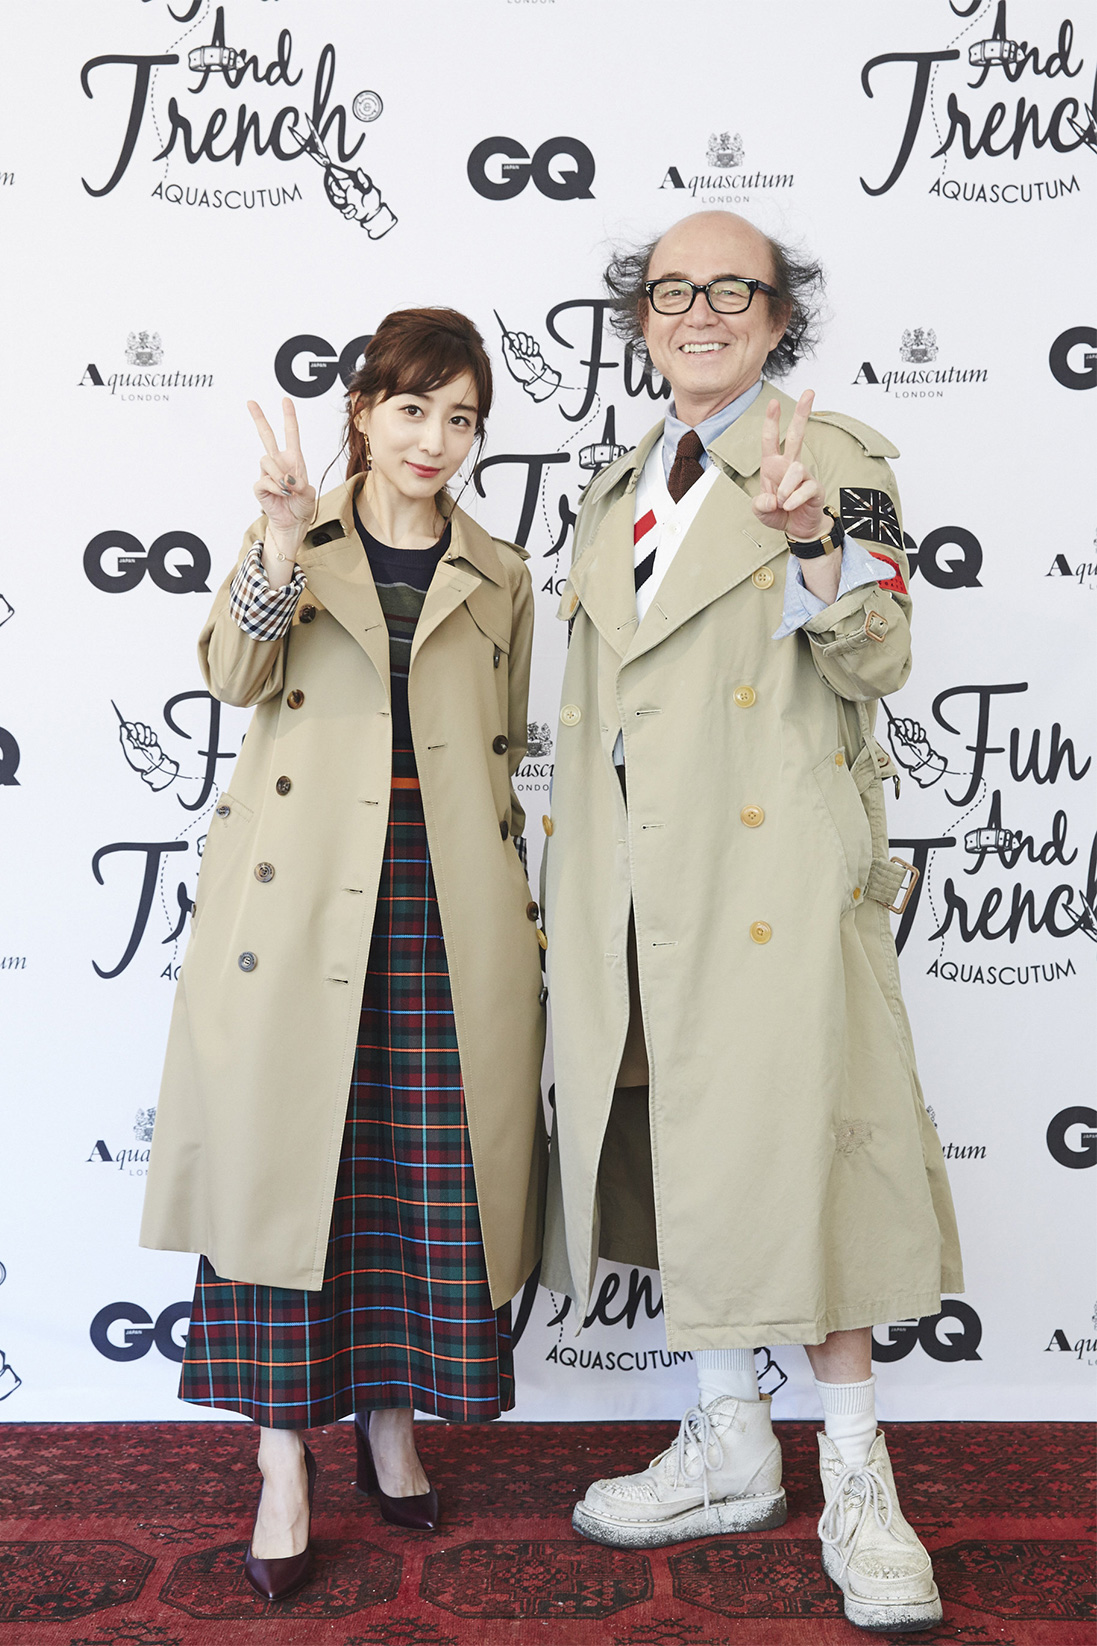 AQUASCUTUM ×『GQ JAPAN』CUSTOMISE EVENT